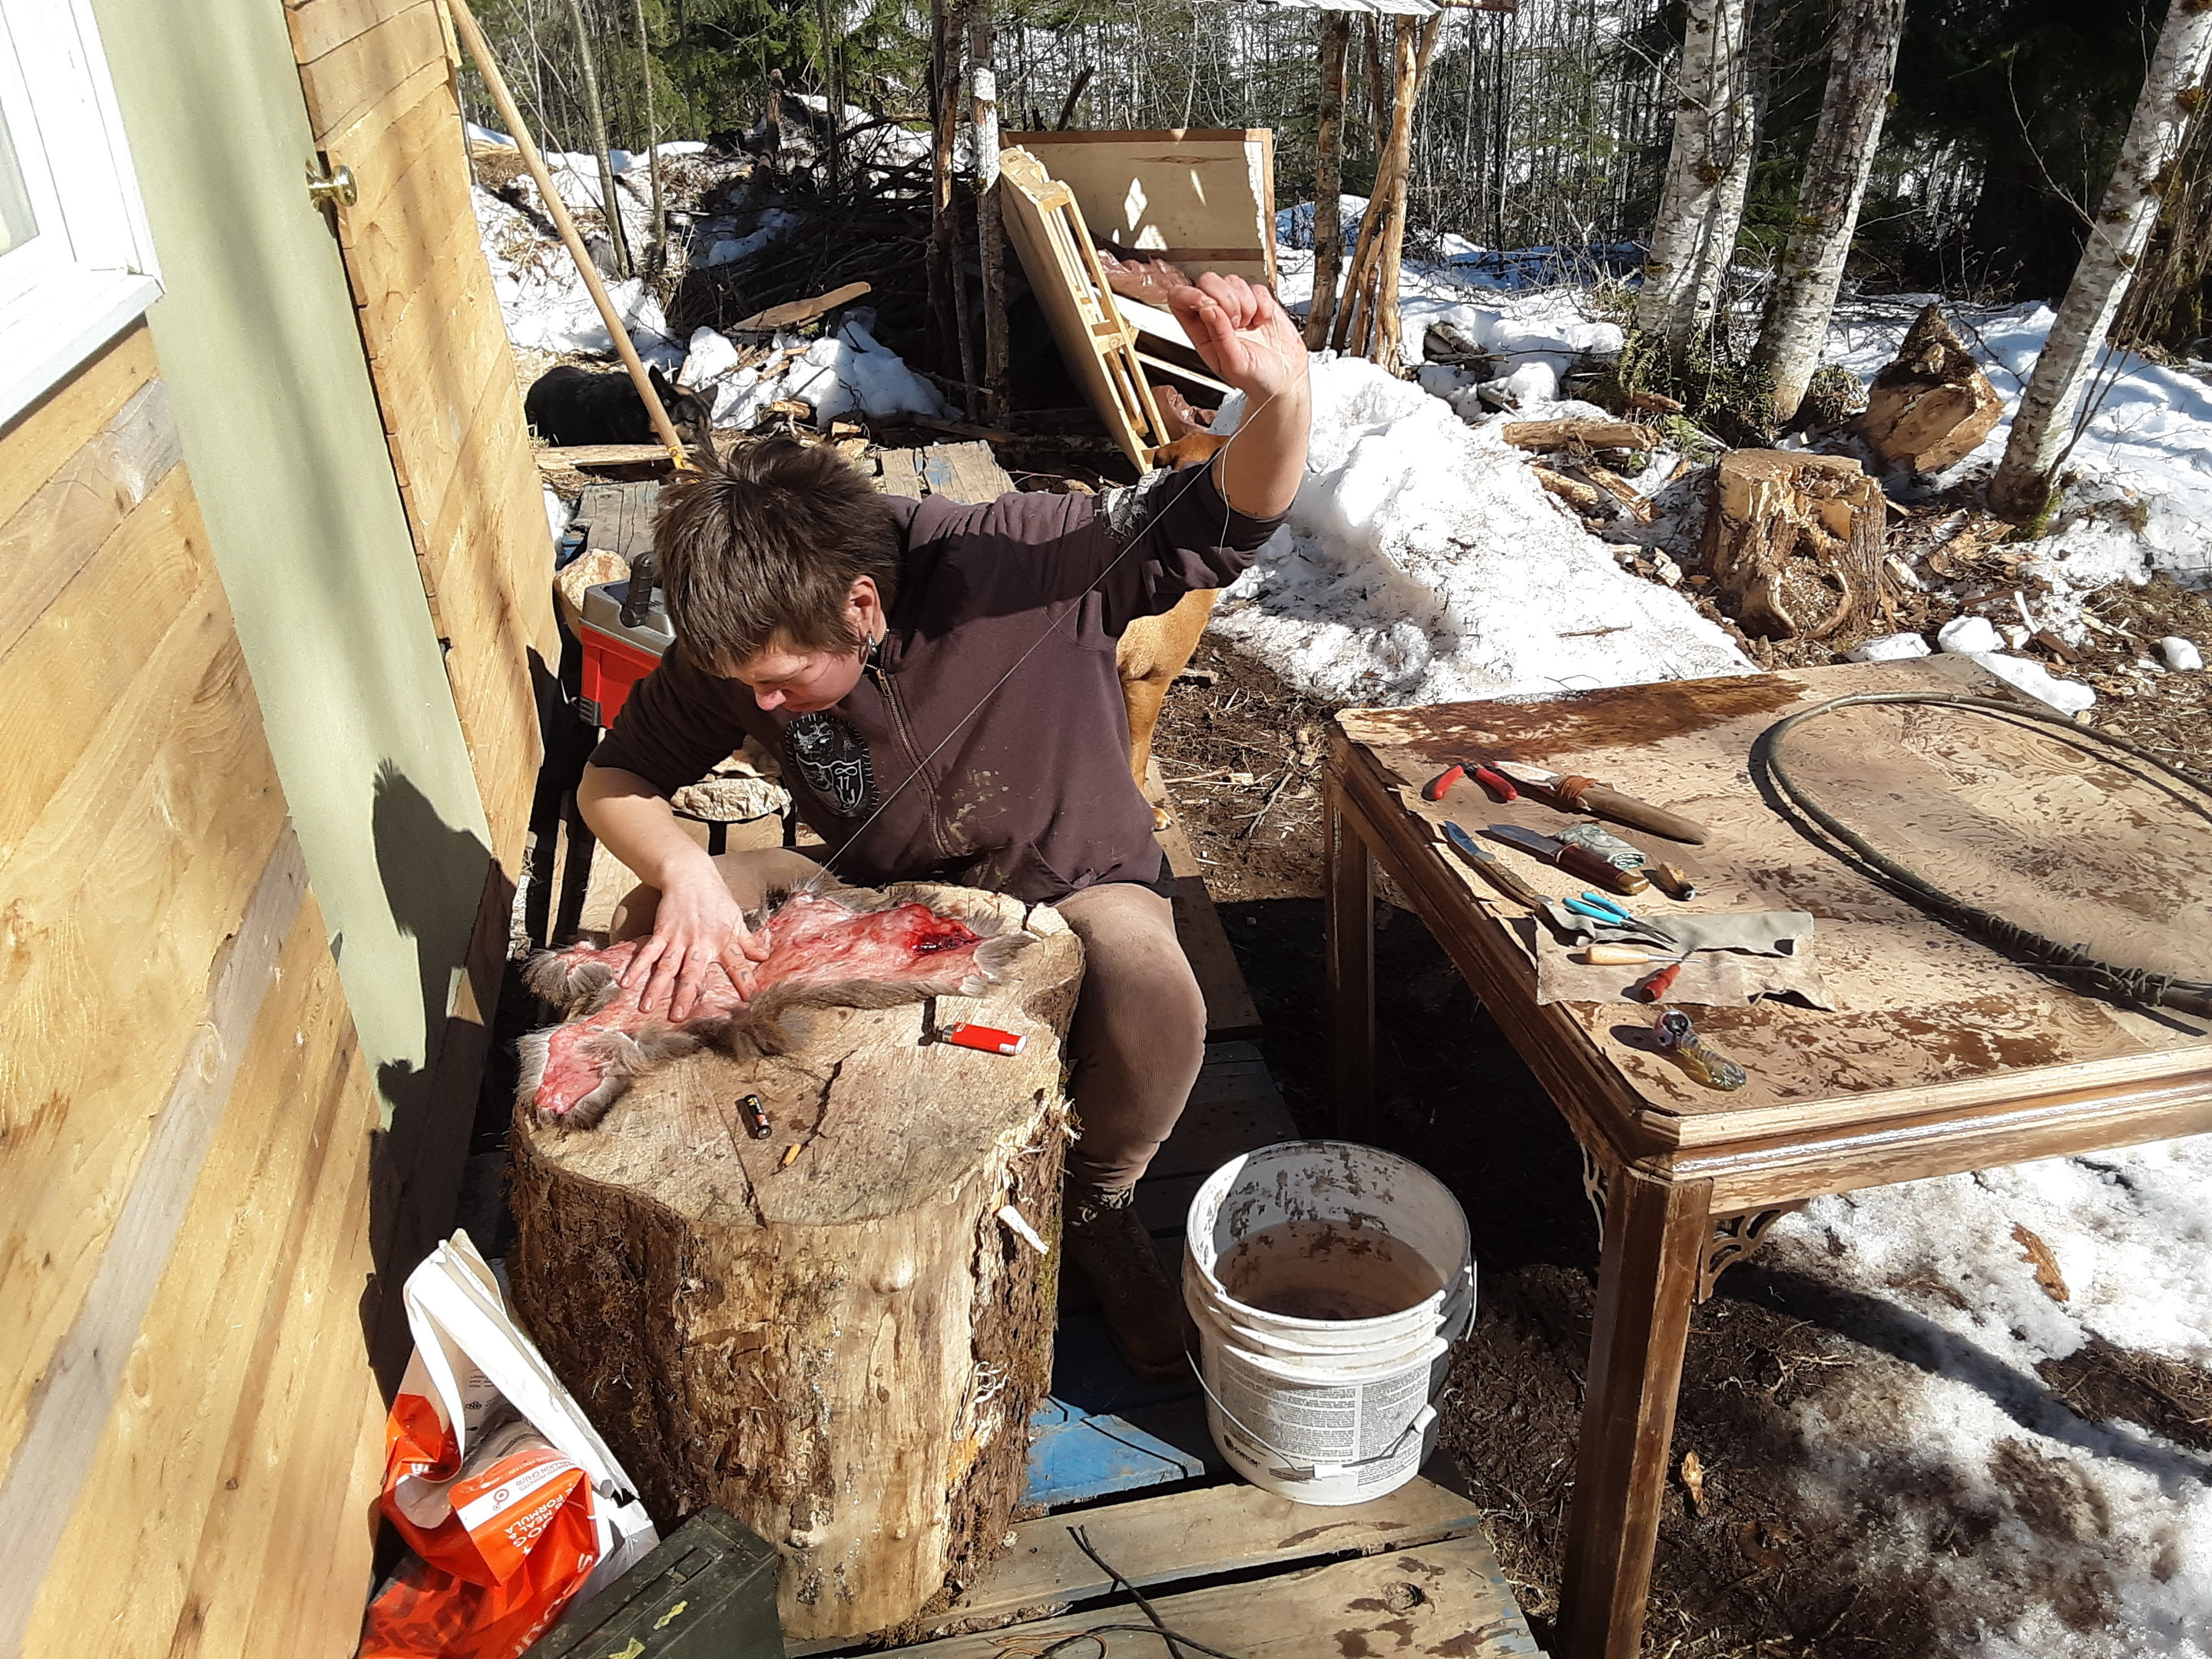 the-art-of-preparing-skin-jpg.52732_Off-Grid homesteadin' wing'n it yeh_Alternative Housing_Squat the Planet_12:24 PM